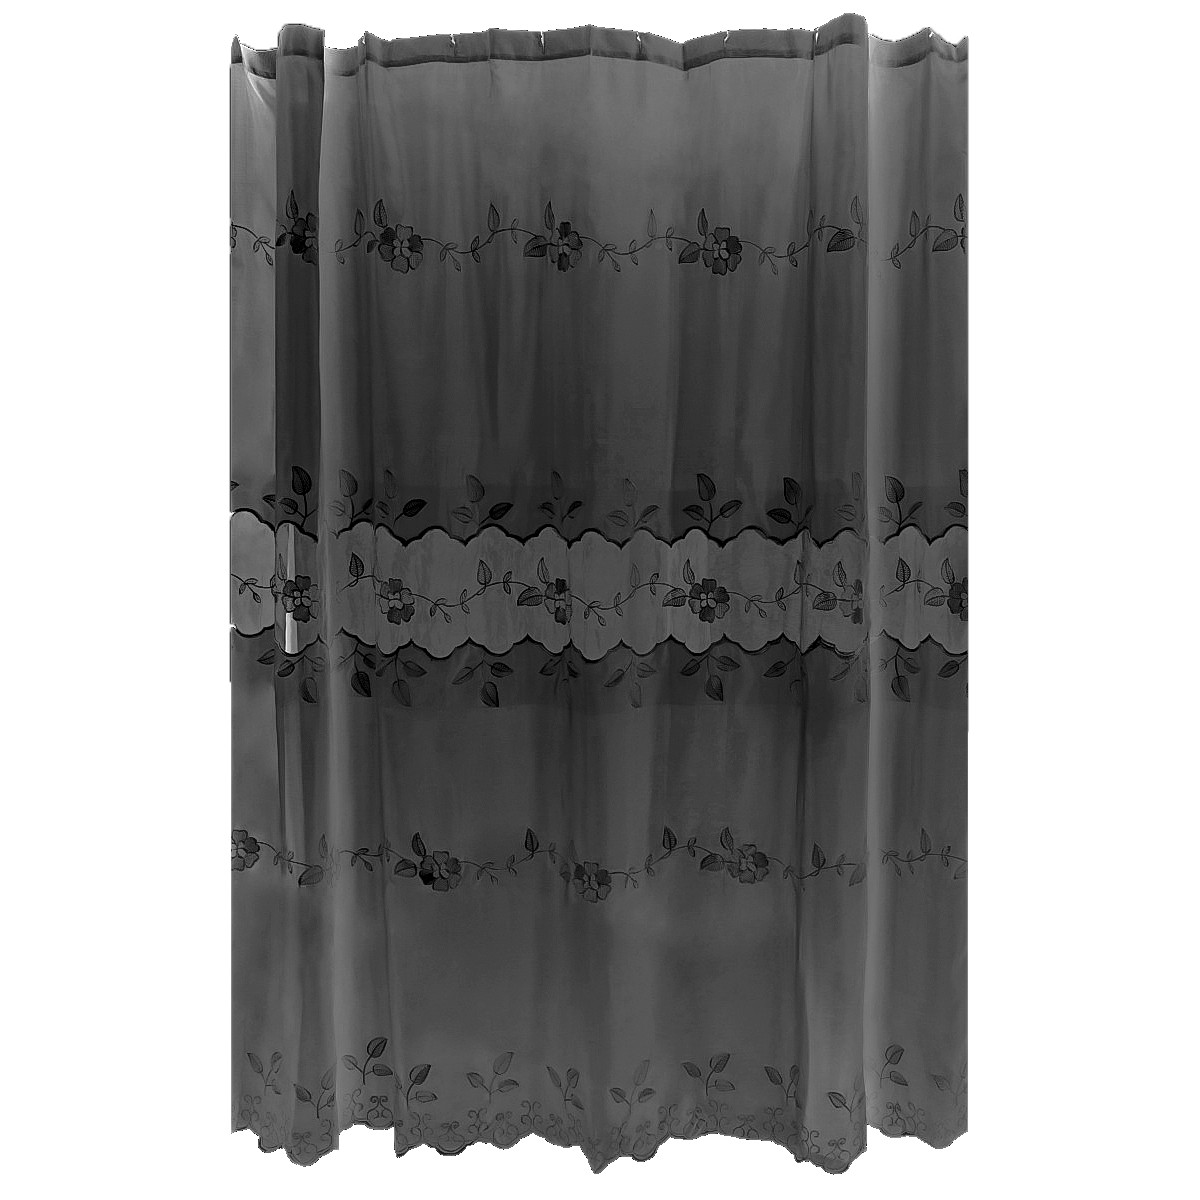 Curtains Ideas Black Lace Curtains Inspiring Pictures Of Curtains Designs And Decorating Ideas